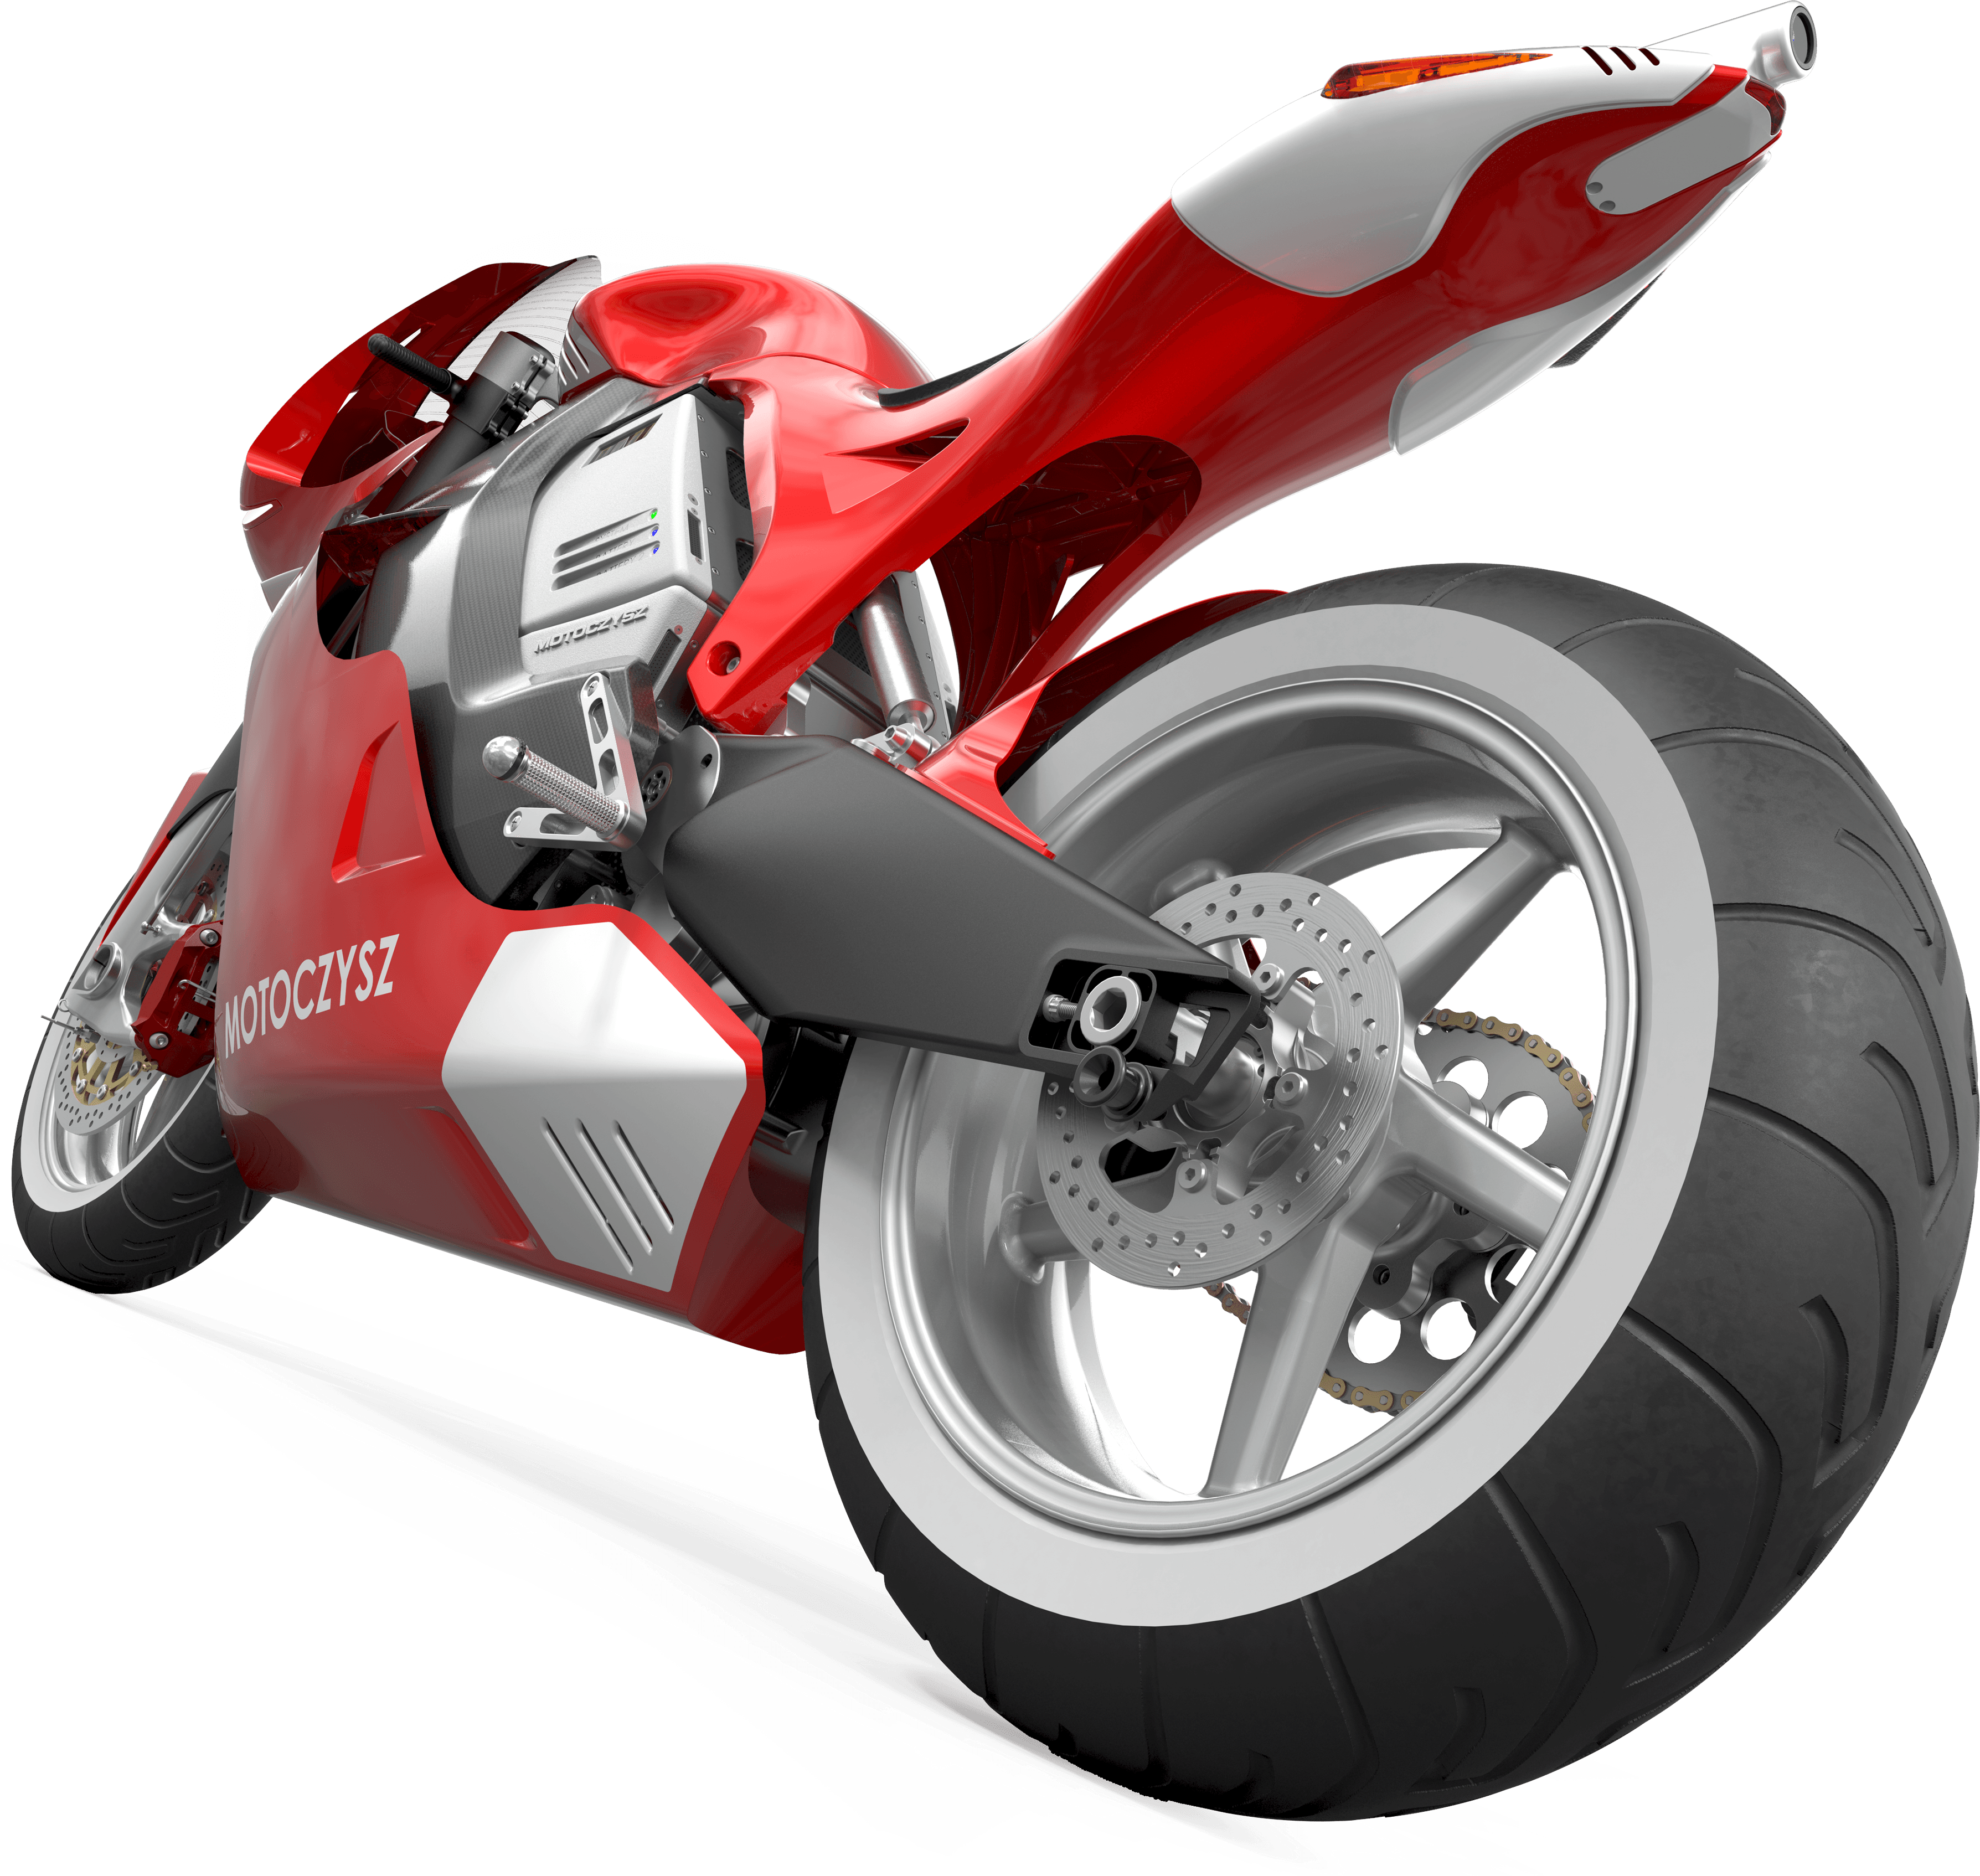 Red Sport Moto Png Image Red Motorcycle Png PNG Image - Motorcycle PNG